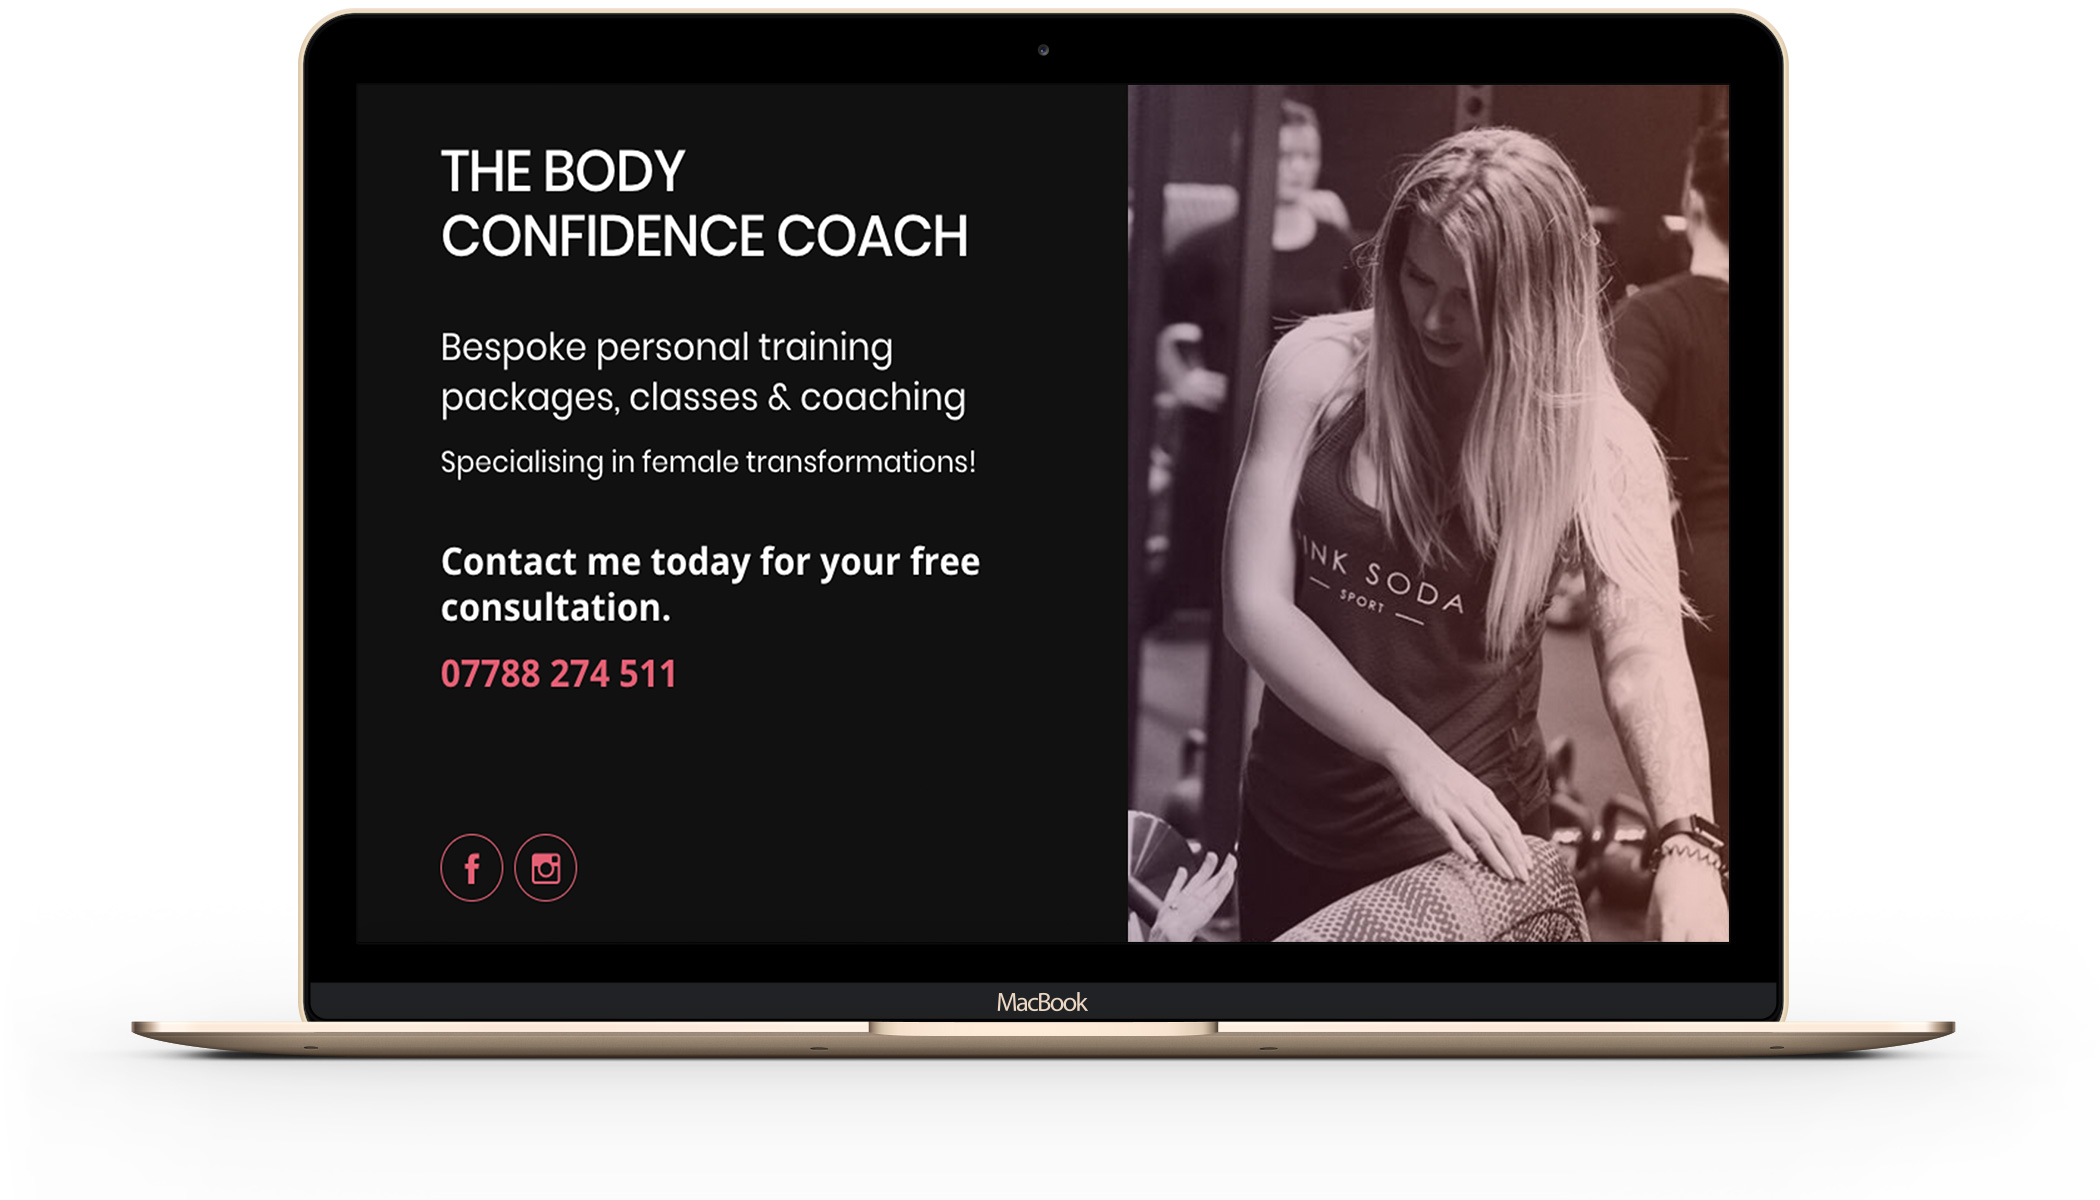 The body confidence coach